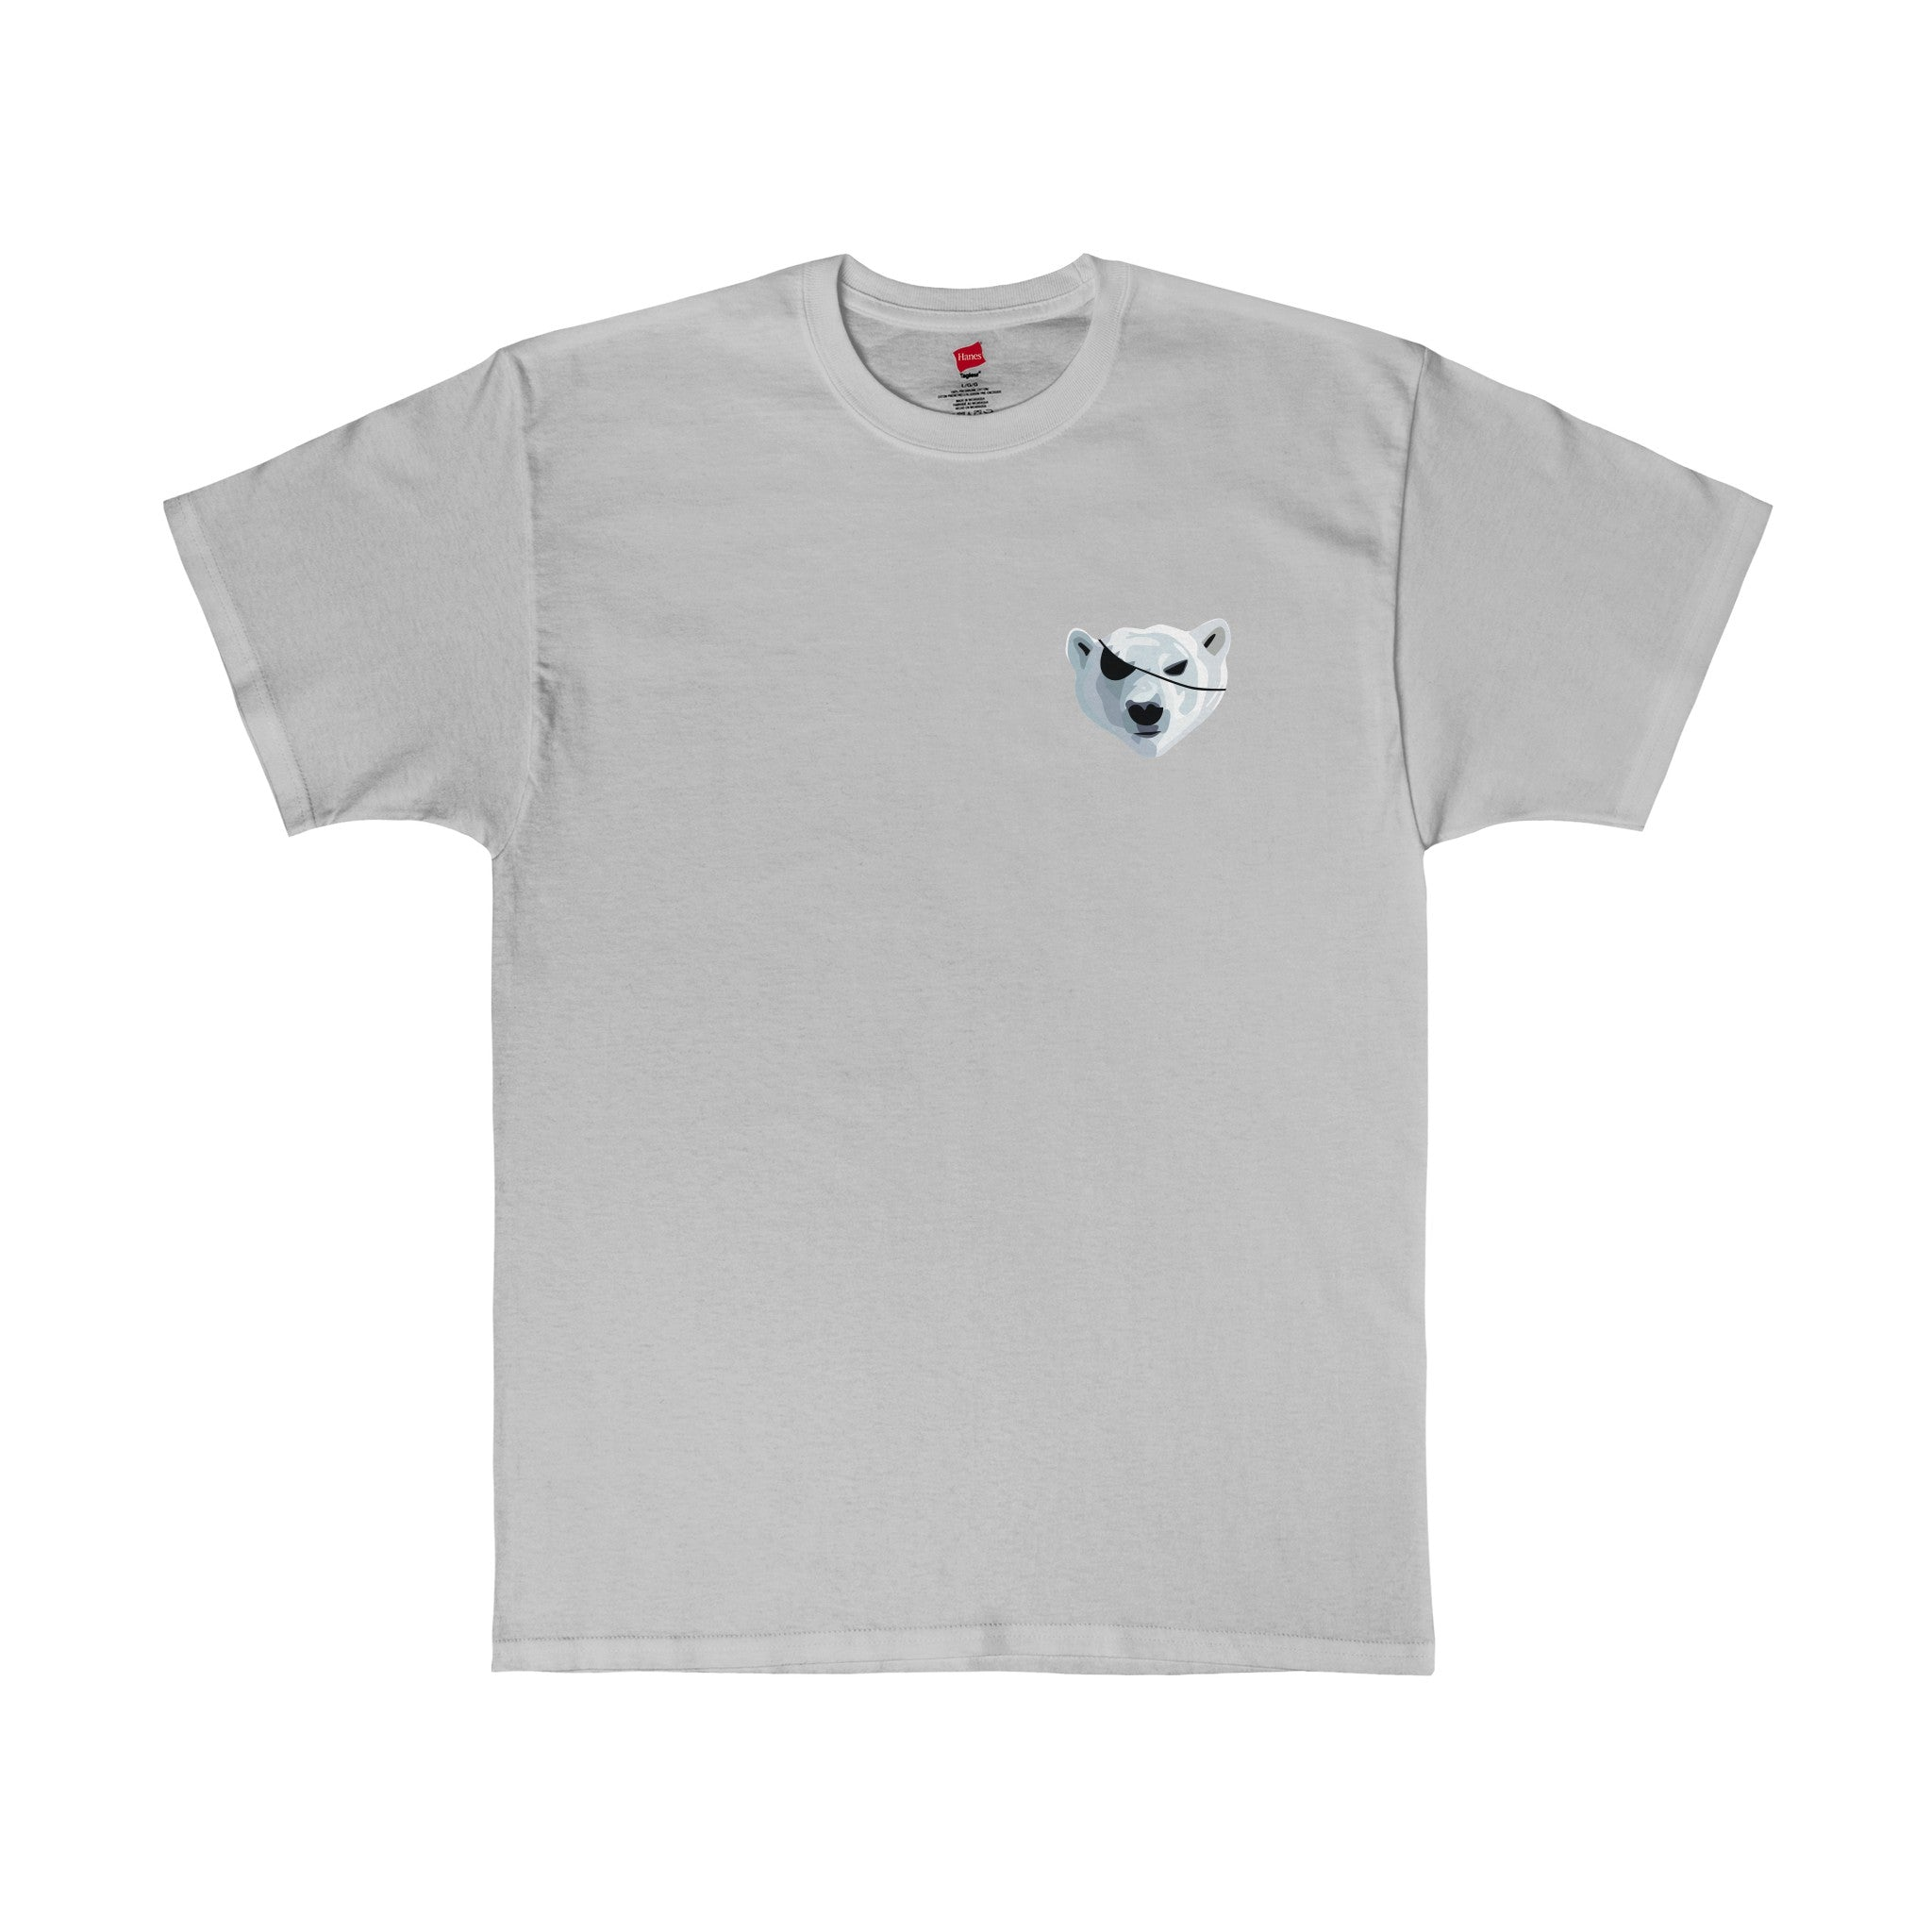 The Pillaging Polar Bear Tagless T-Shirt